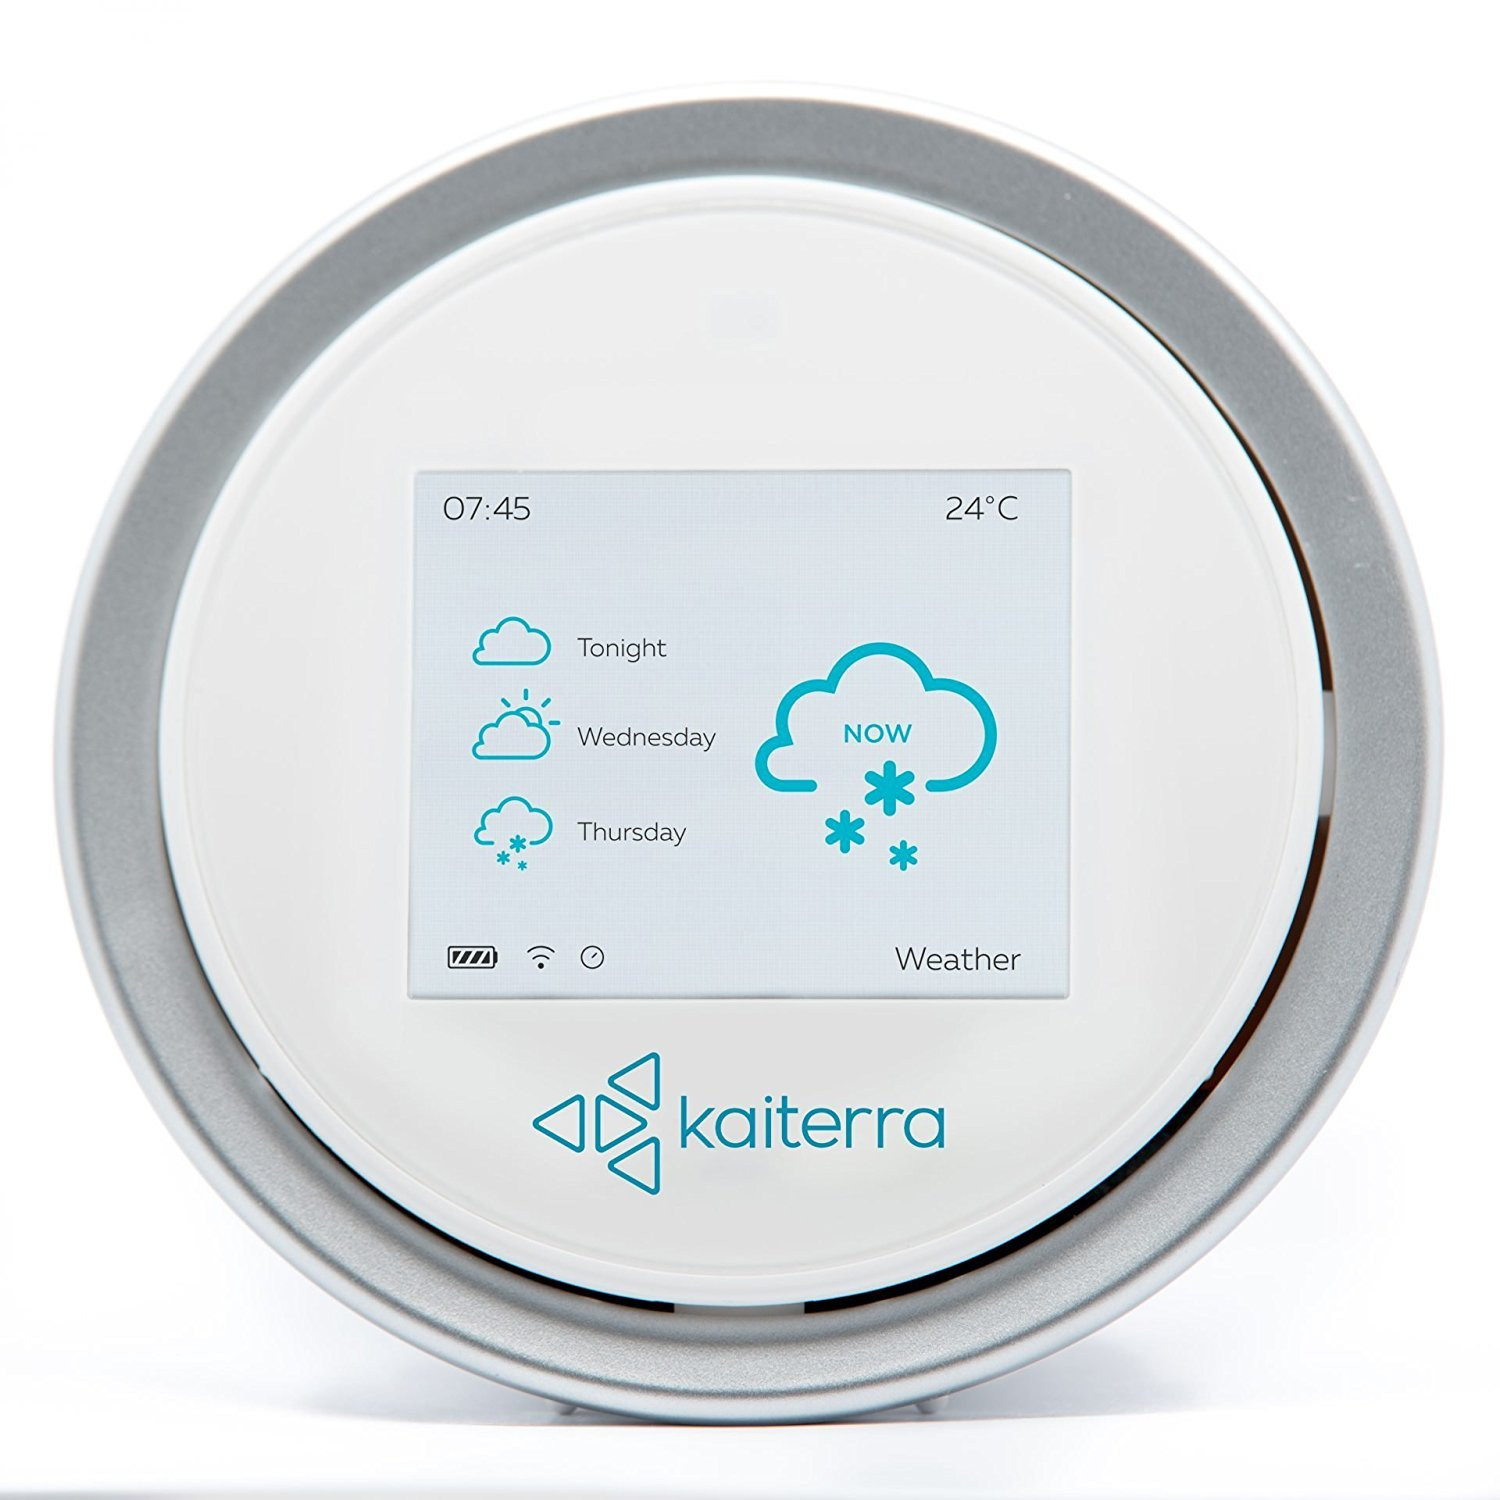 Air Quality Monitor - LaserEgg 2 with PM2.5 Pollution Sensor plus Temperature and Humidity Sensors. Compatible with Apple HomeKit, iPhone& Android App